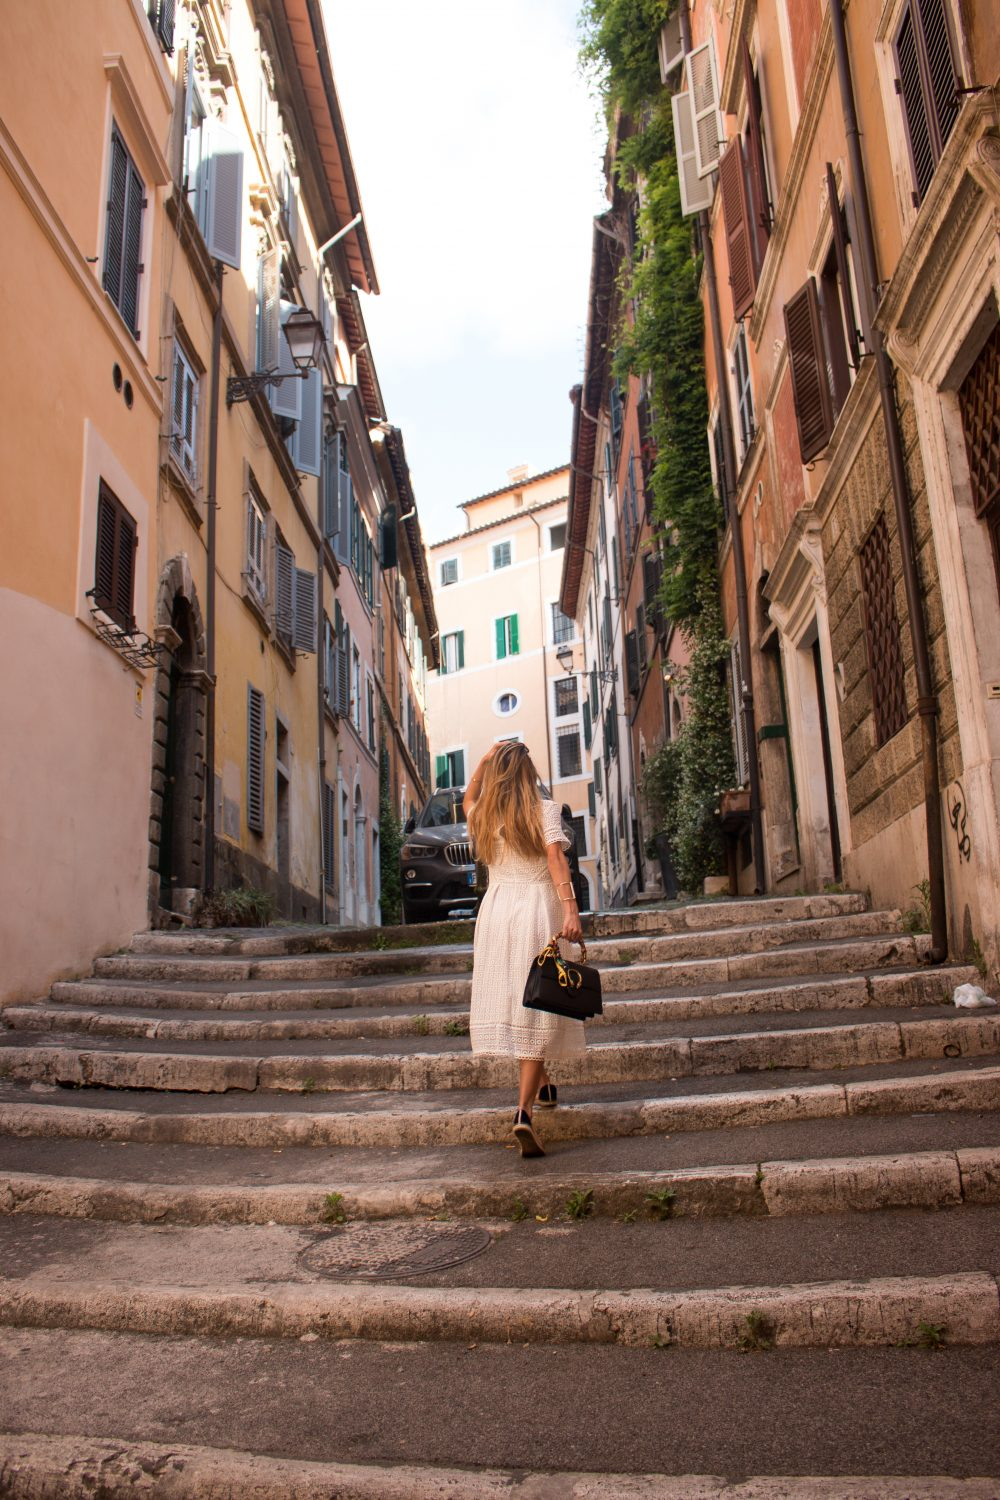 Whitney's Wonderland NYC Top Luxury Fashion Blogger wears Boden white lace midi dress and Gucci dionysus bag in Rome